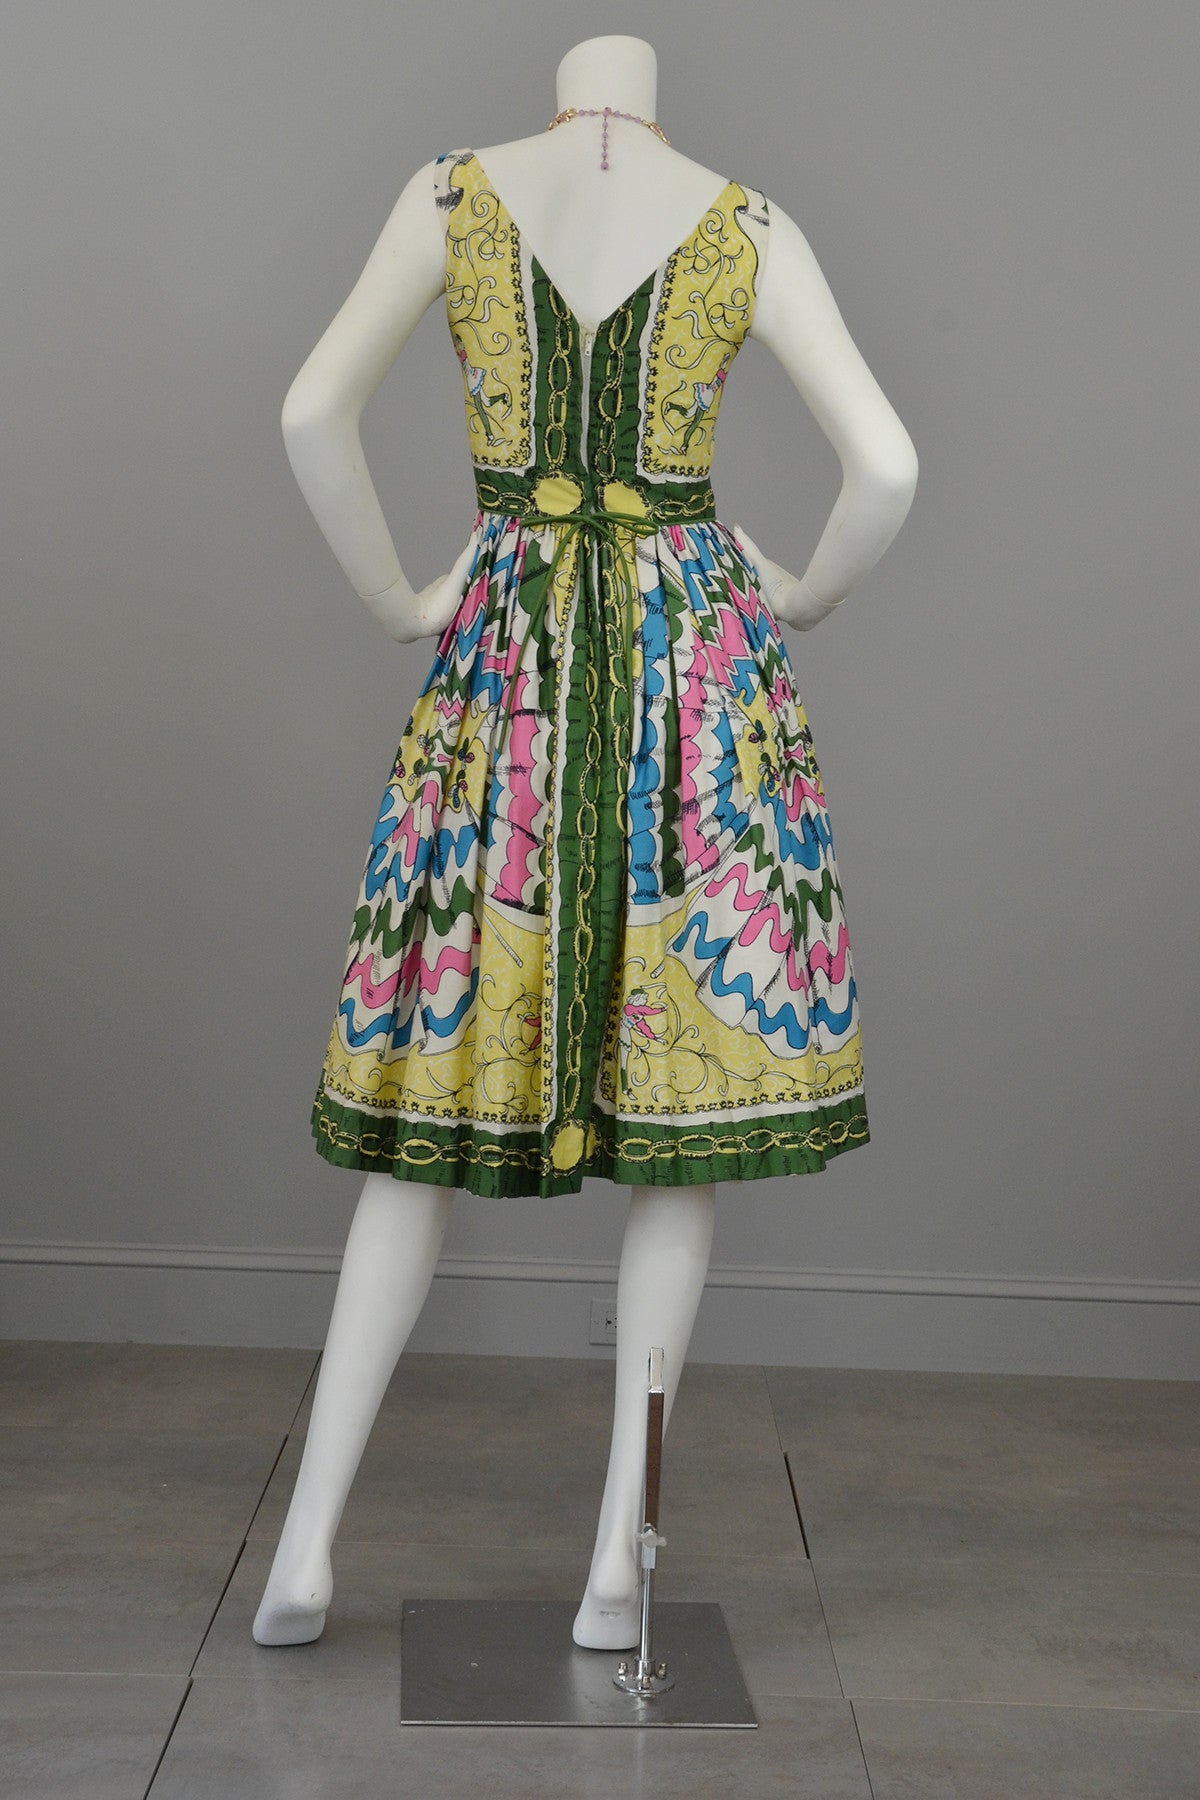 1950s Novelty Print Vintage Dress with Dancing Jesters